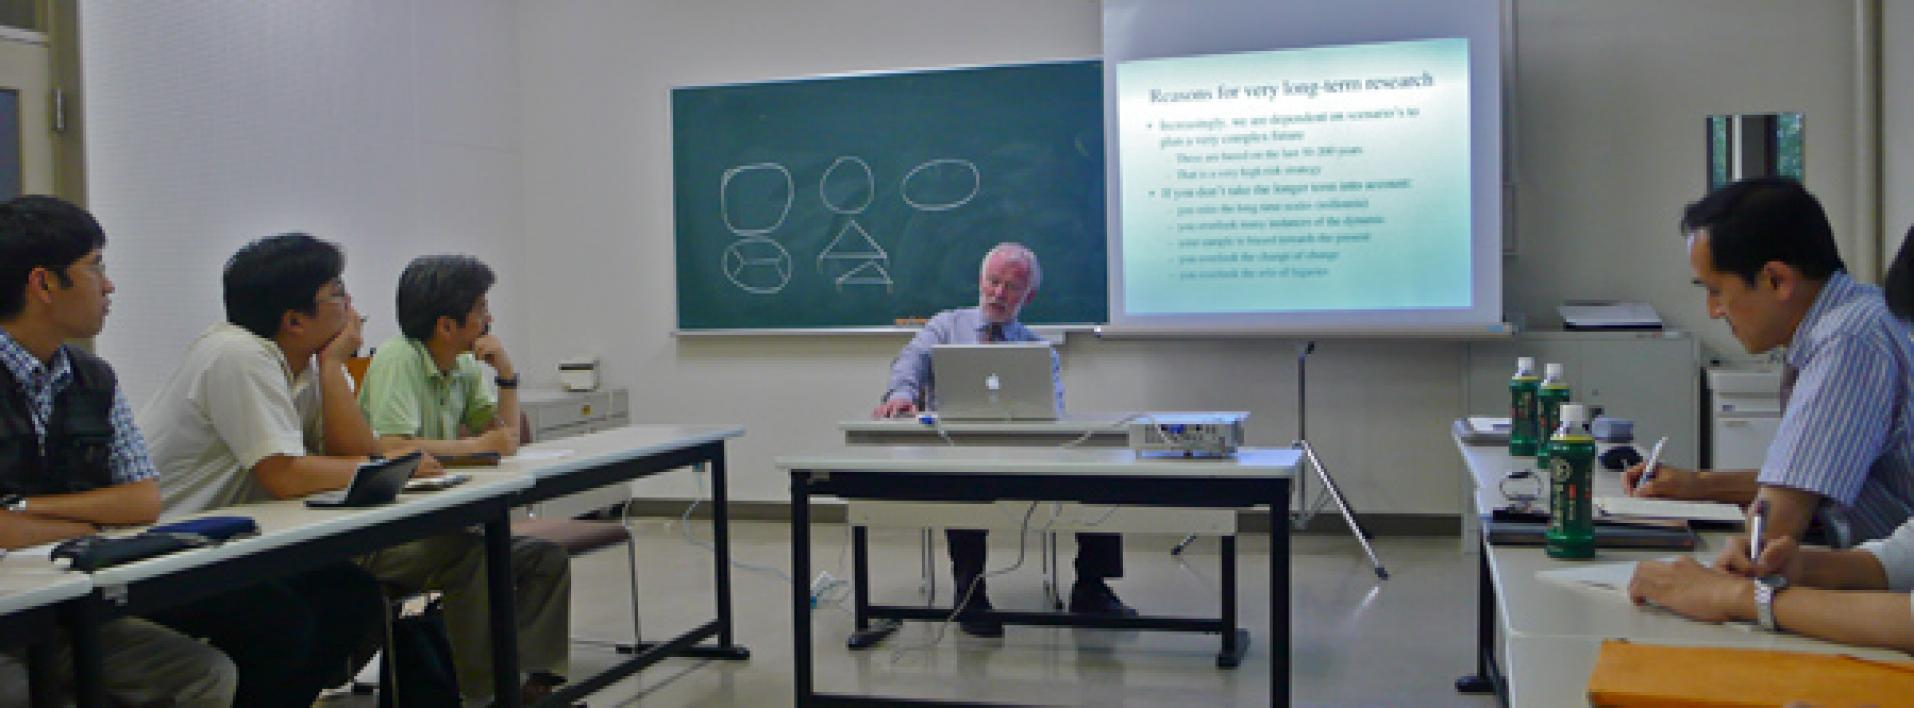 Sander van der Leeuw giving a talk at Fukuoka University in Japan